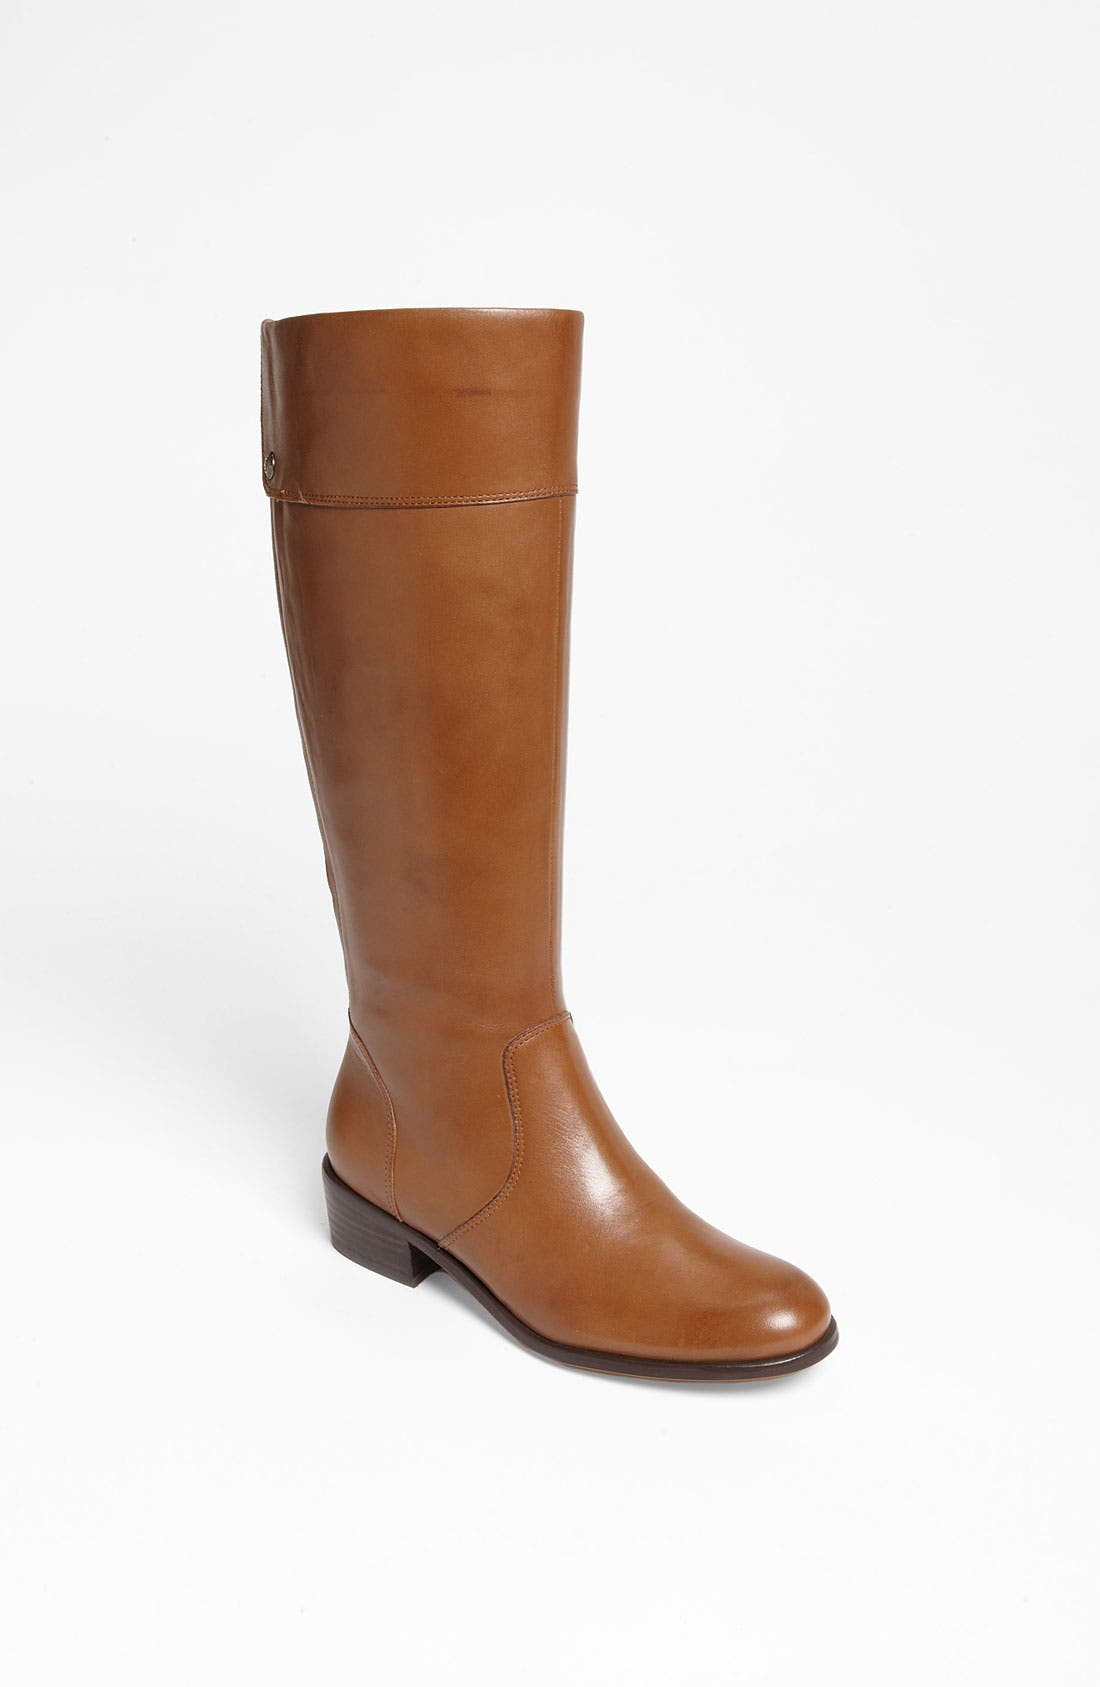 Alternate Image 1 Selected - Corso Como 'Samual' Boot (Nordstrom Exclusive)